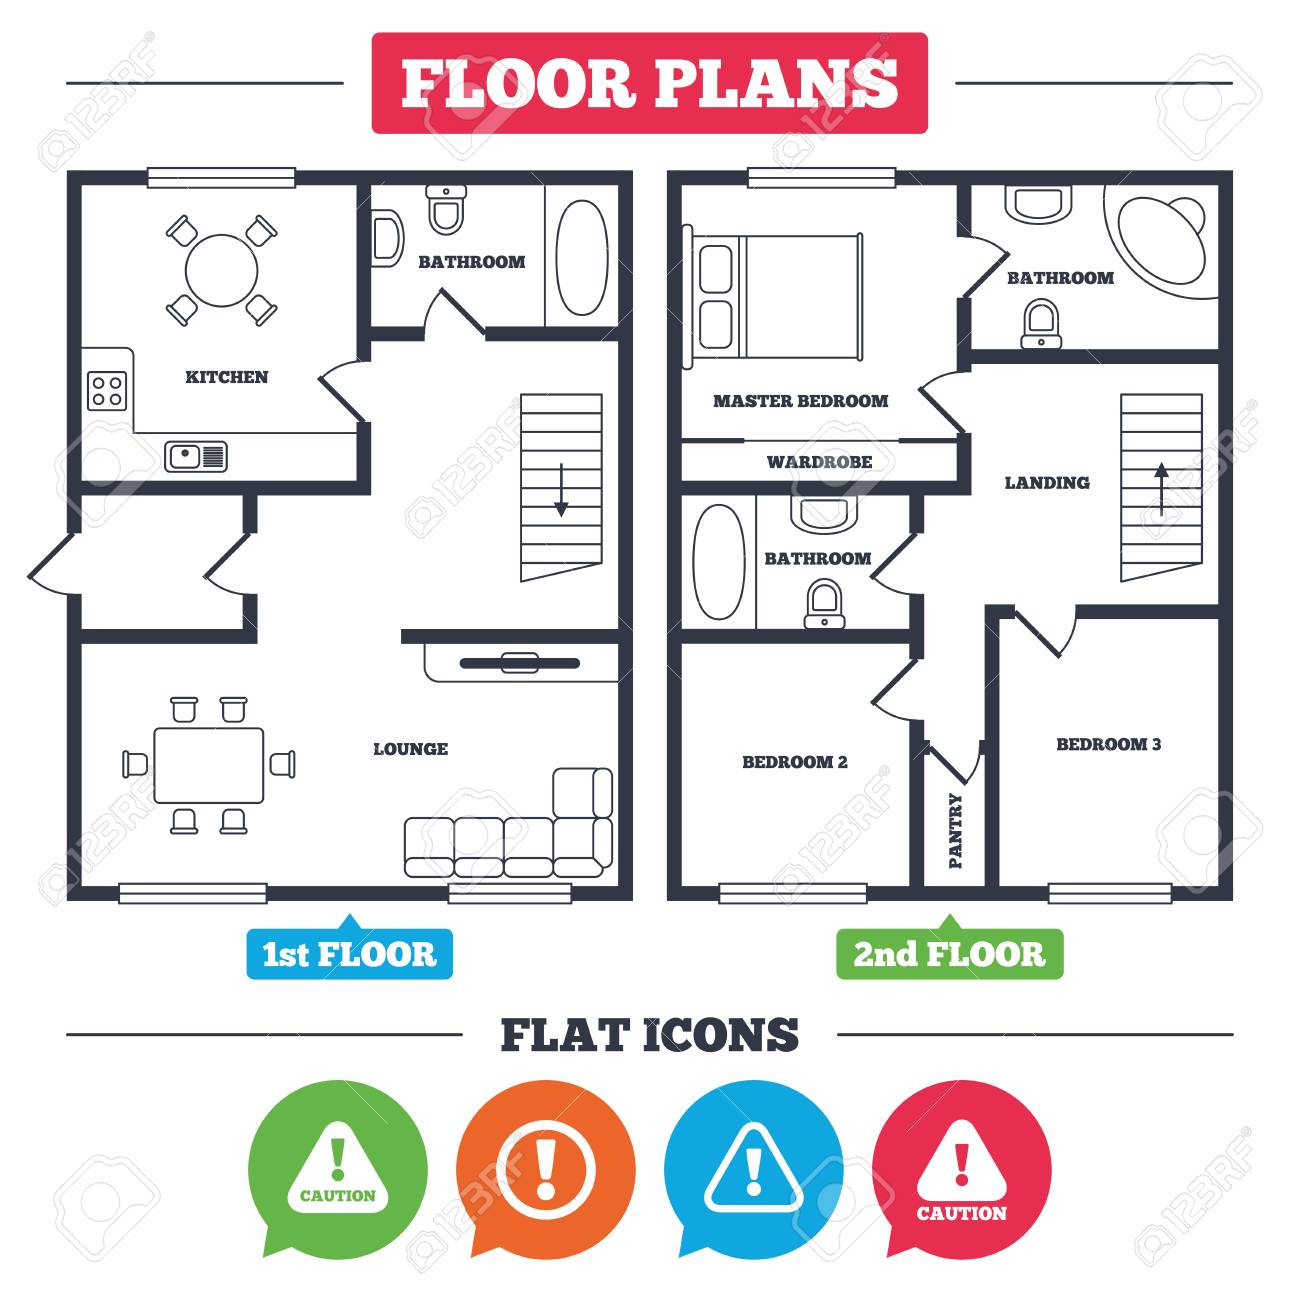 Architecture Plan With Furniture. House Floor Plan. Attention Caution  Icons. Hazard Warning Symbols